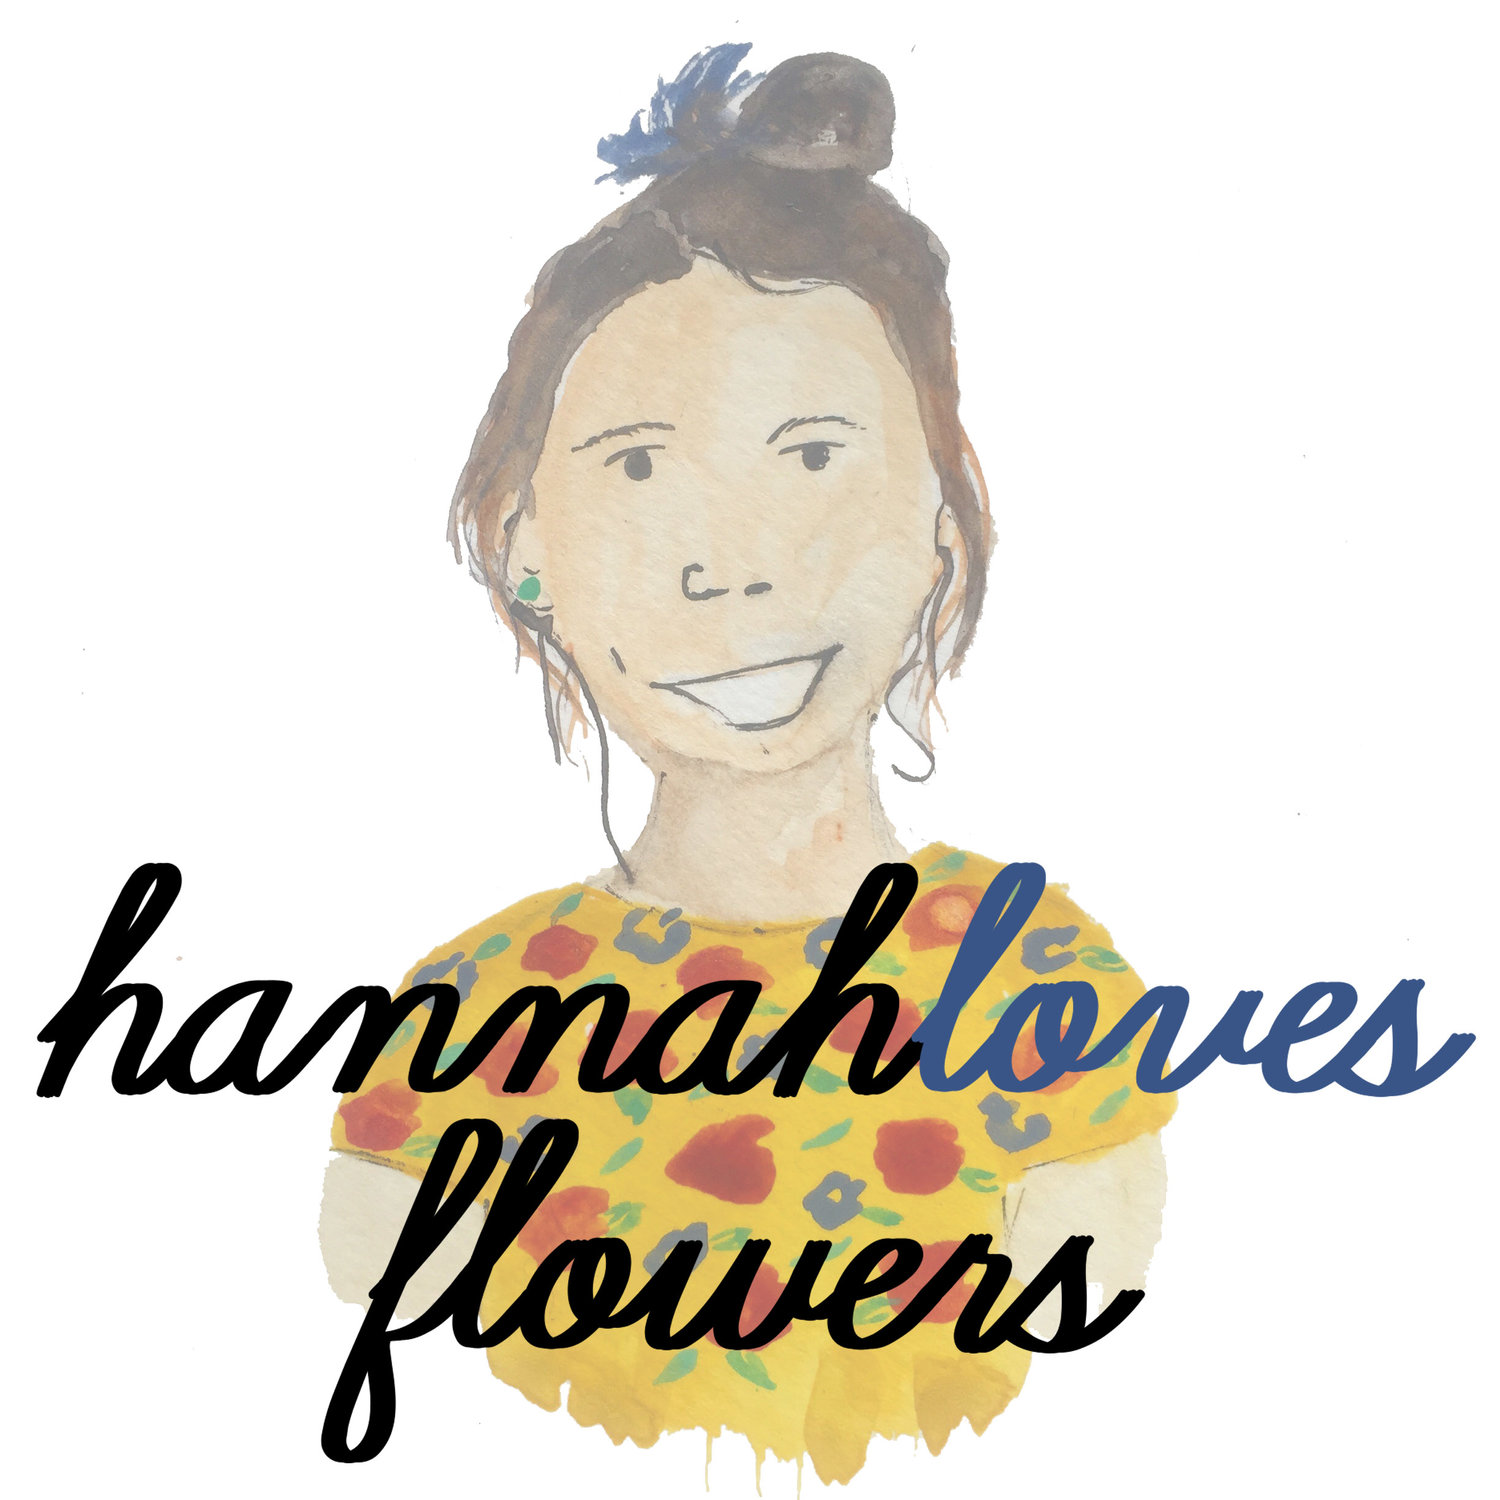 Hannah Loves Flowers